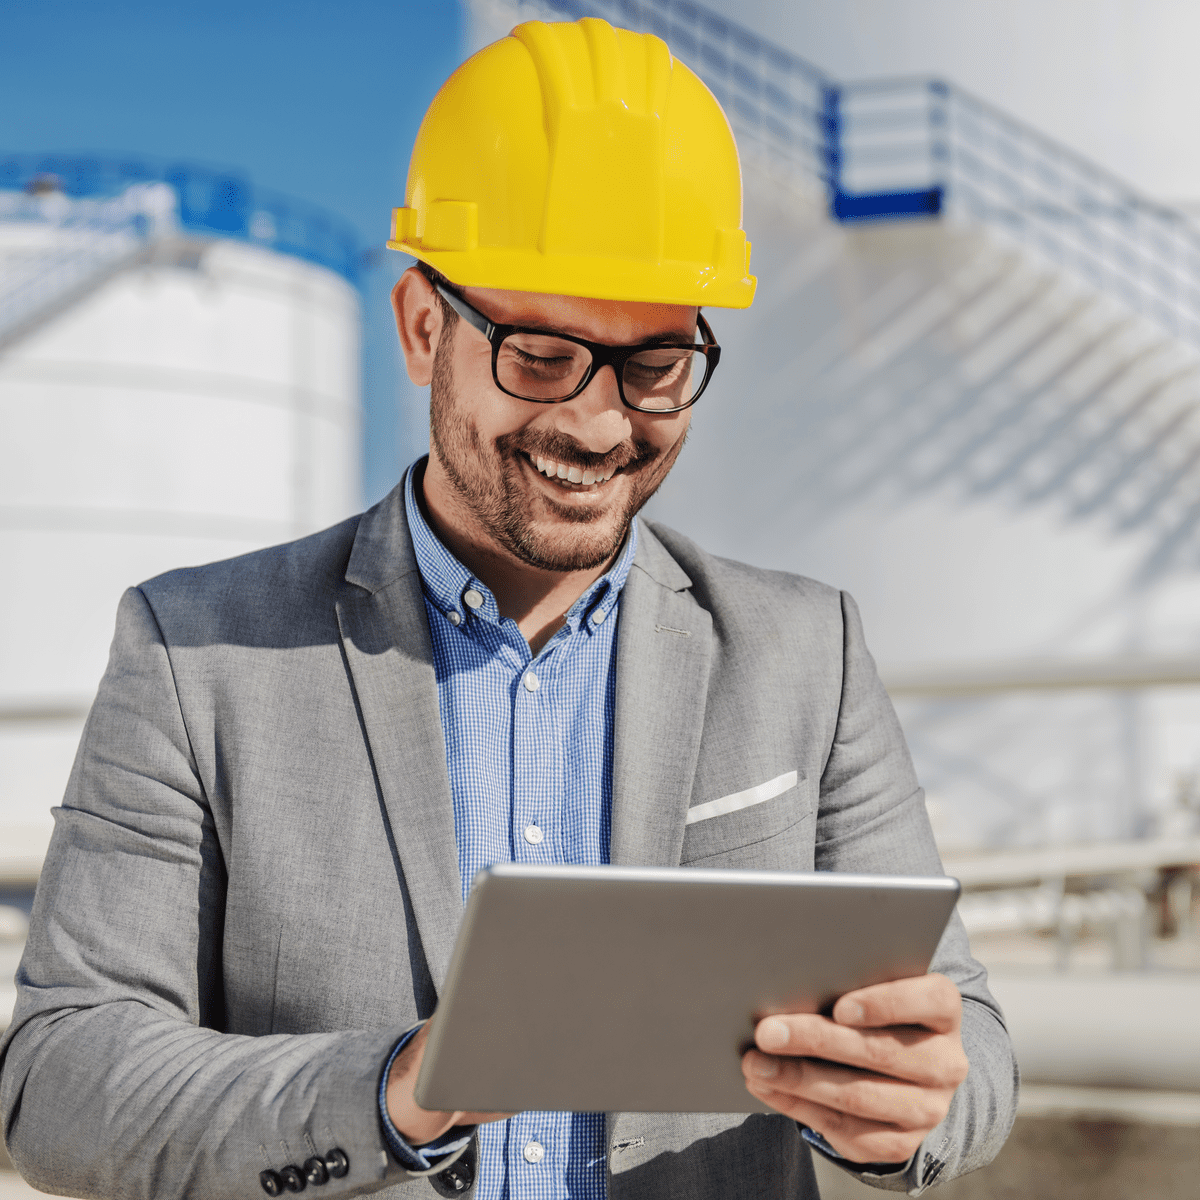 Oil foreman looking at tablet in front of oil containers